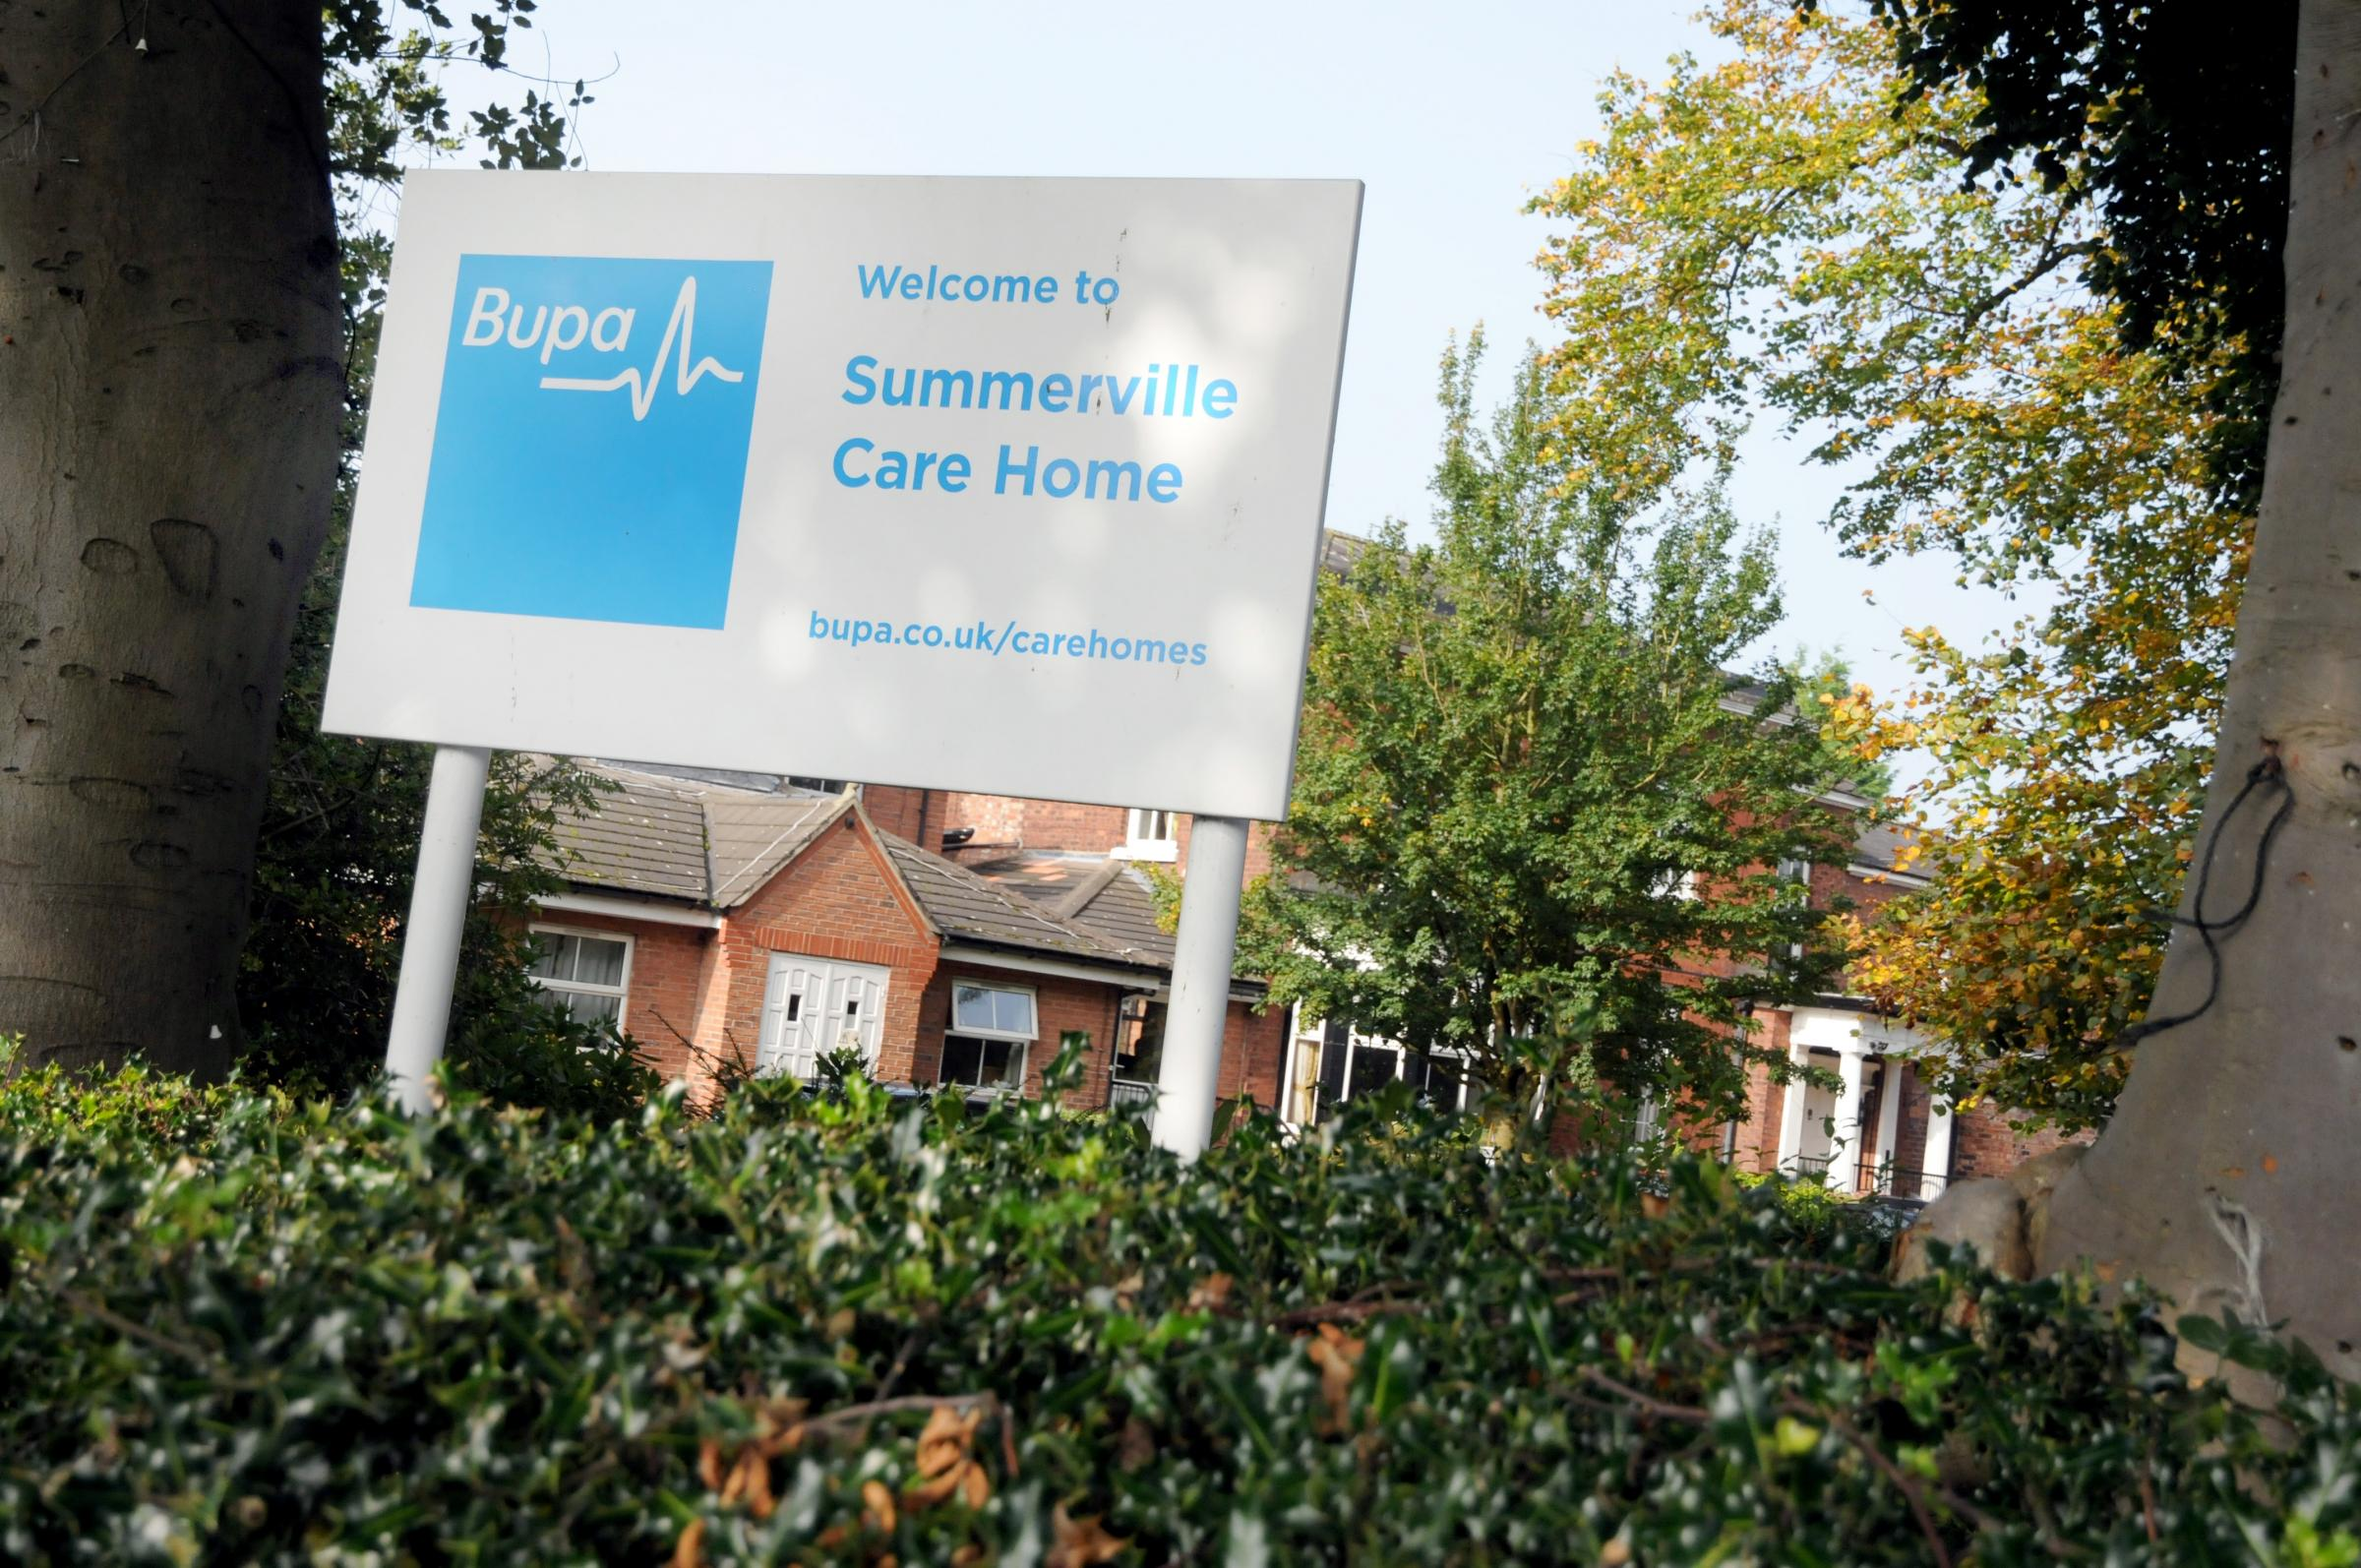 Summerville Care Home has been taken out of special measures by the Care Quality Commission, but further improvements have been ordered by inspectors.